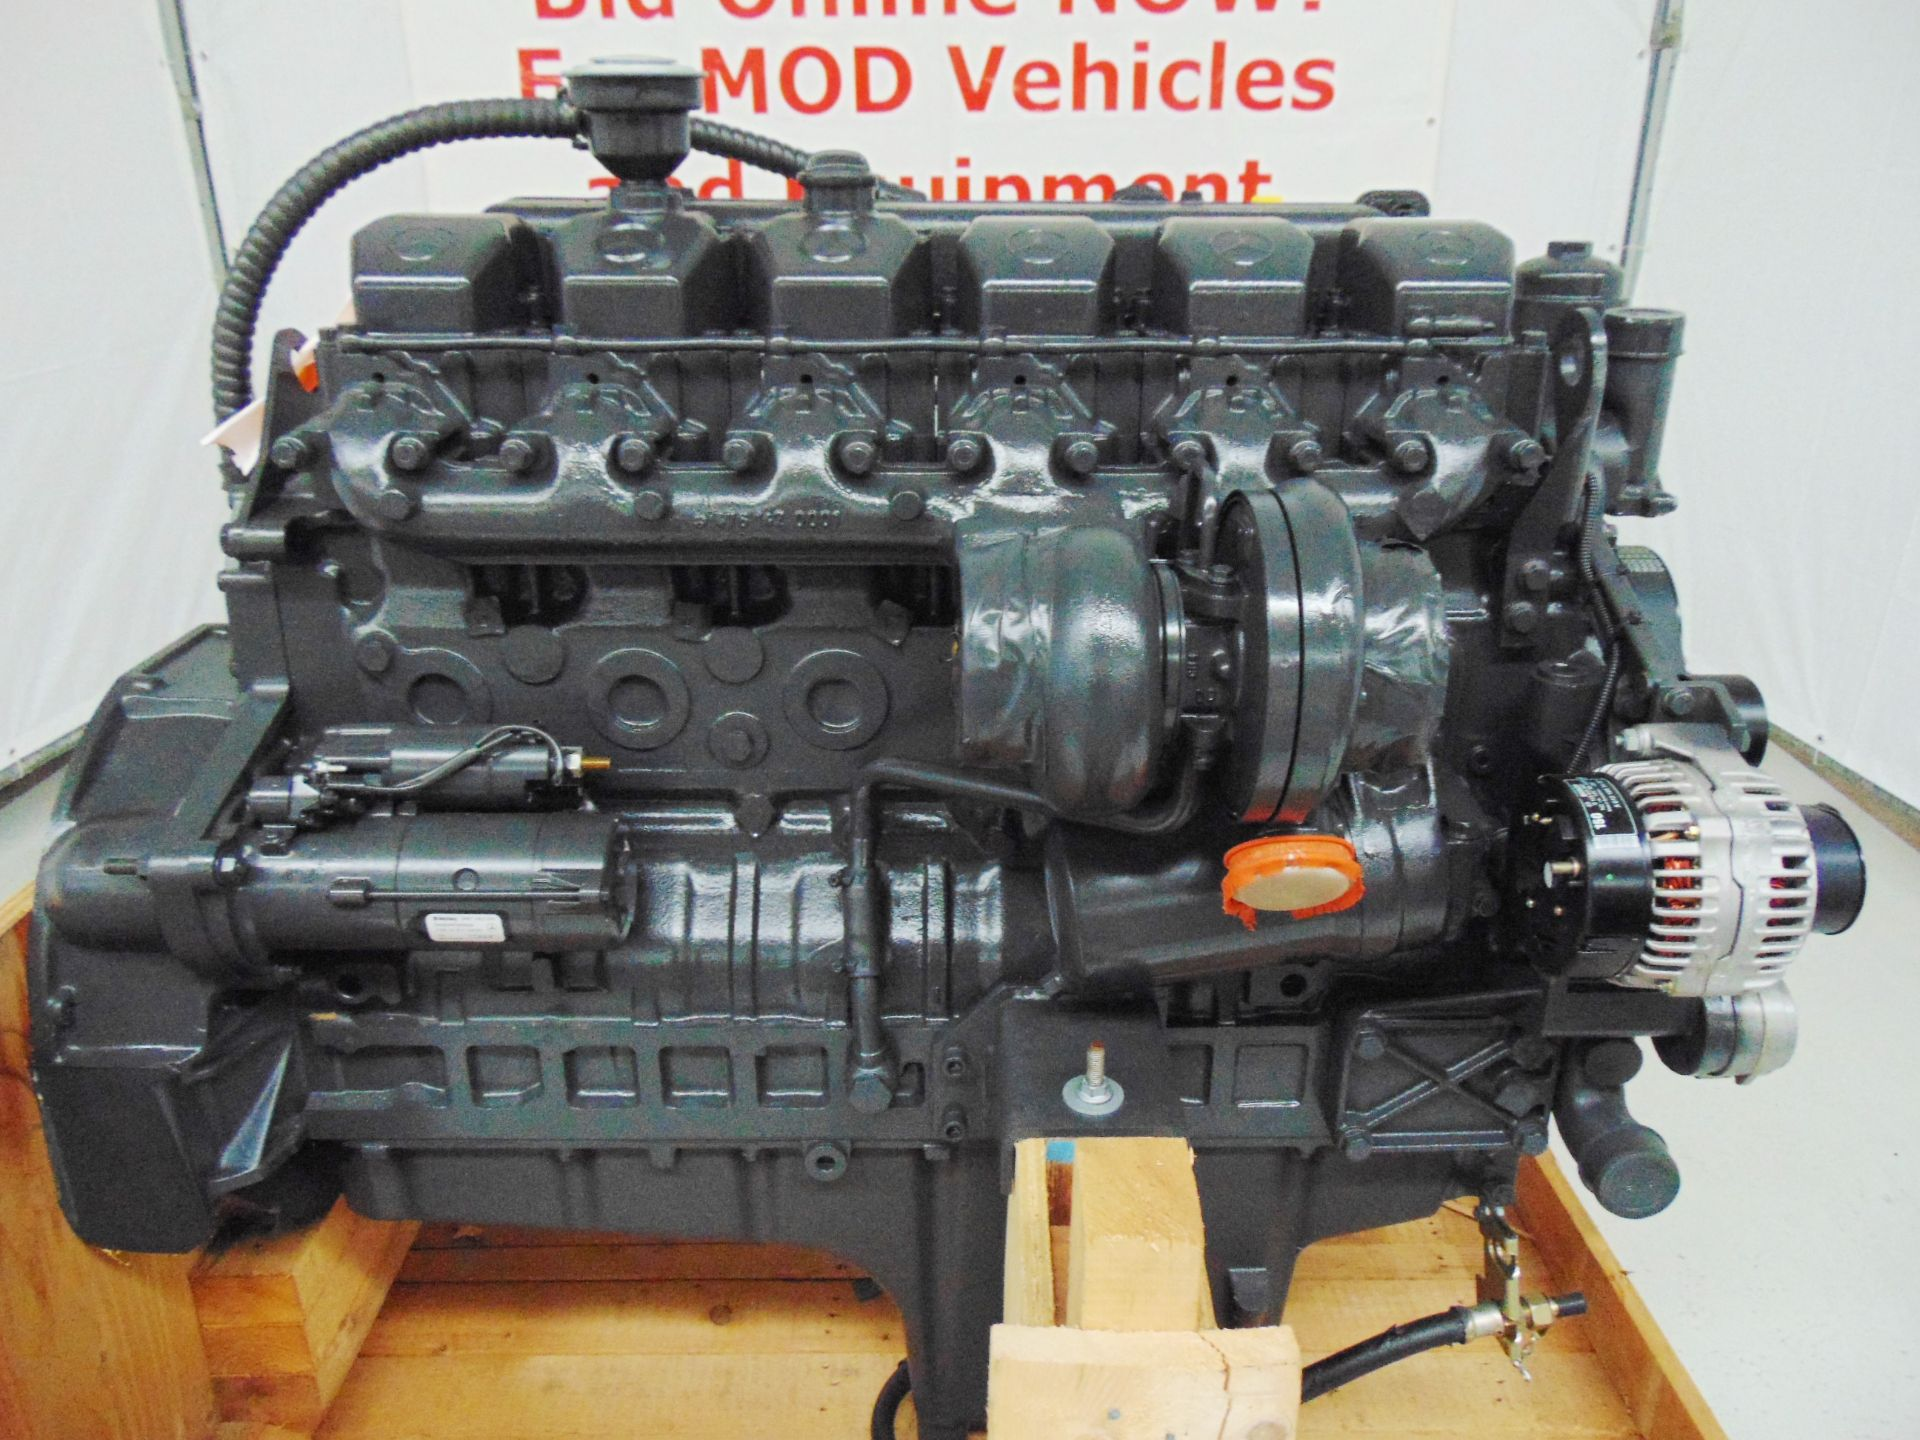 Lot 20 - Factory Reconditioned Mercedes-Benz OM424 V12 Turbo Diesel Engine